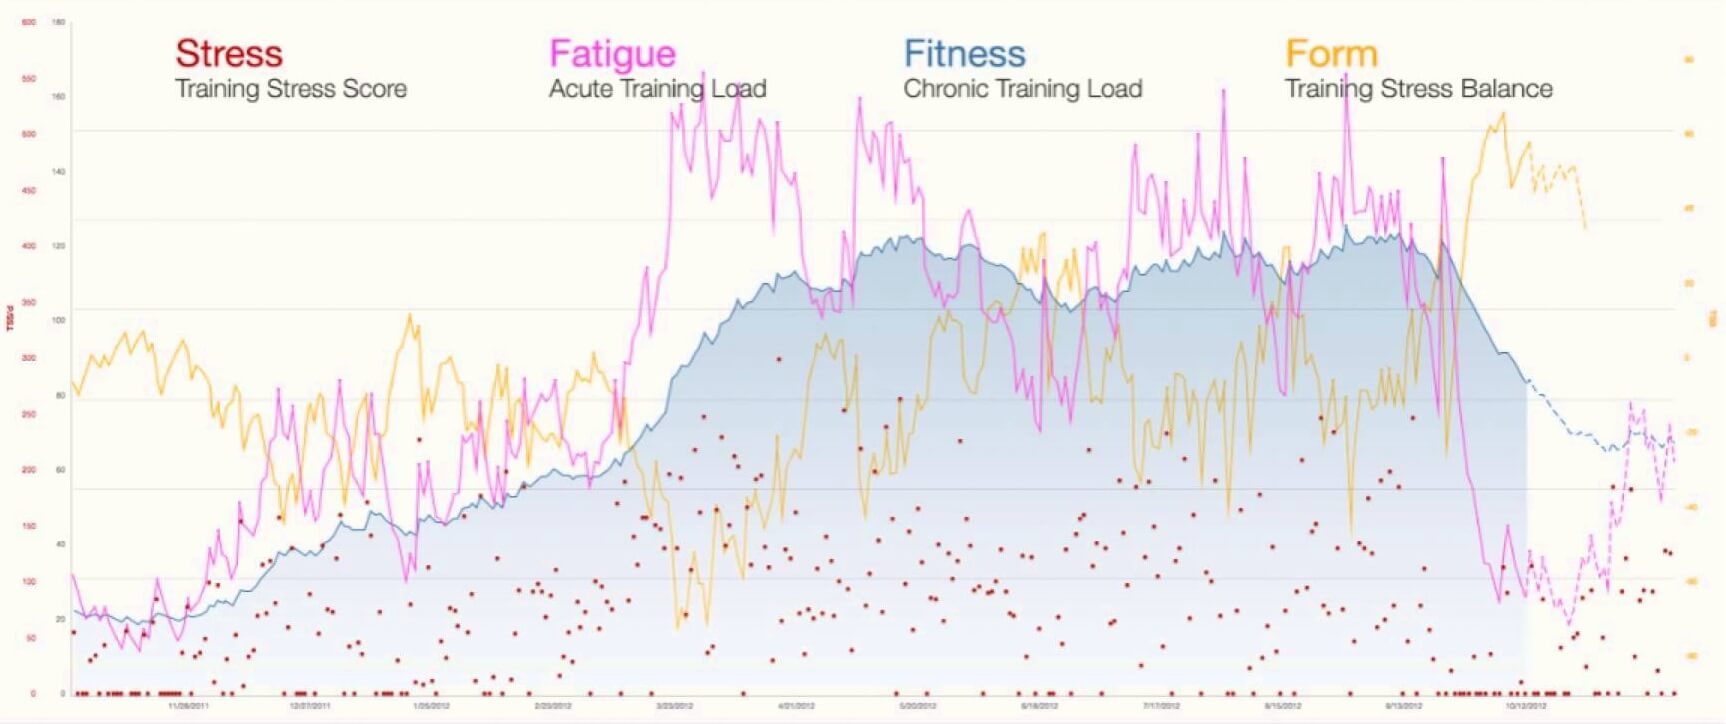 TrainingPeaks Performance Management Chart